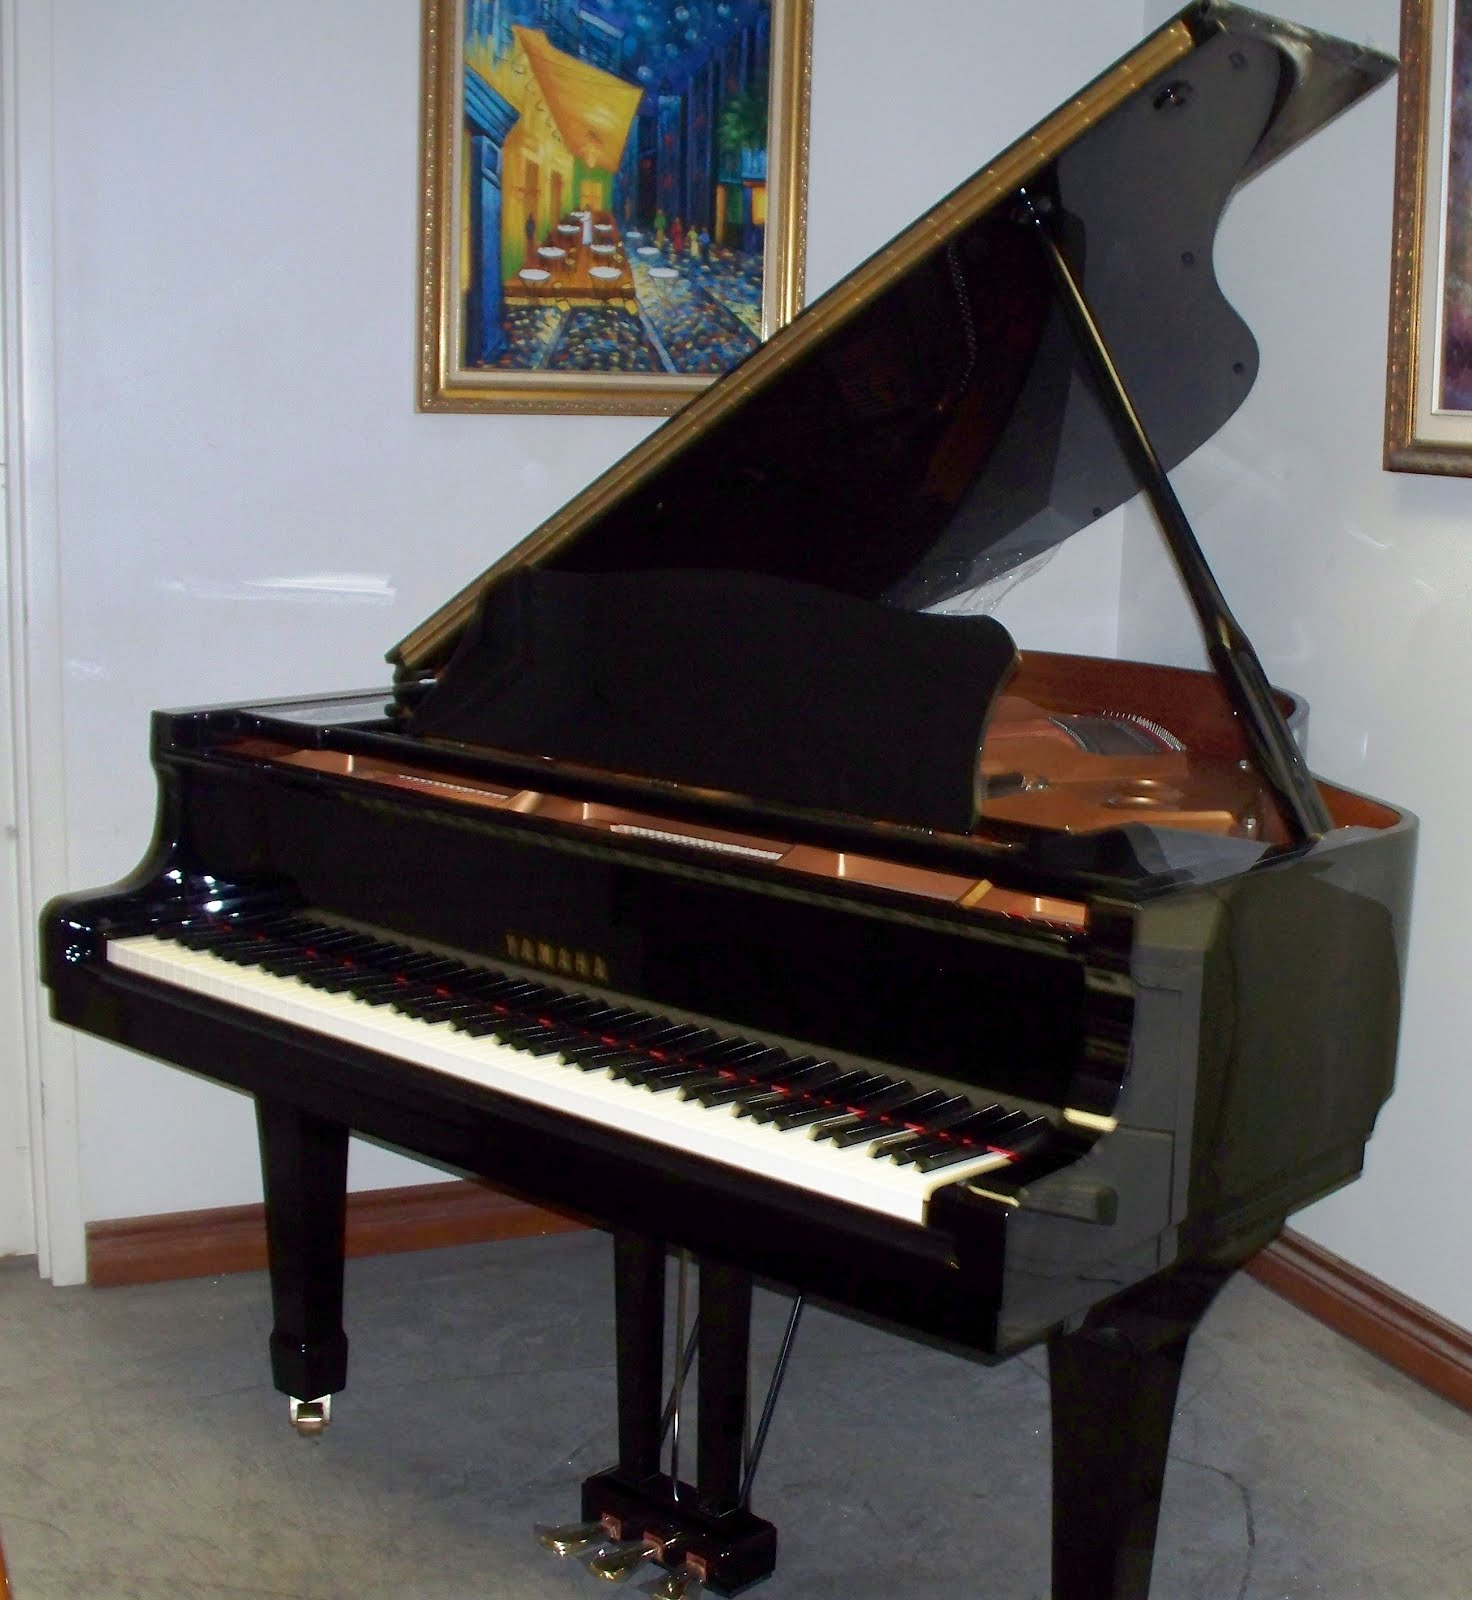 1999 yamaha c2 grand piano for sale car interior design for Yamaha grand pianos for sale